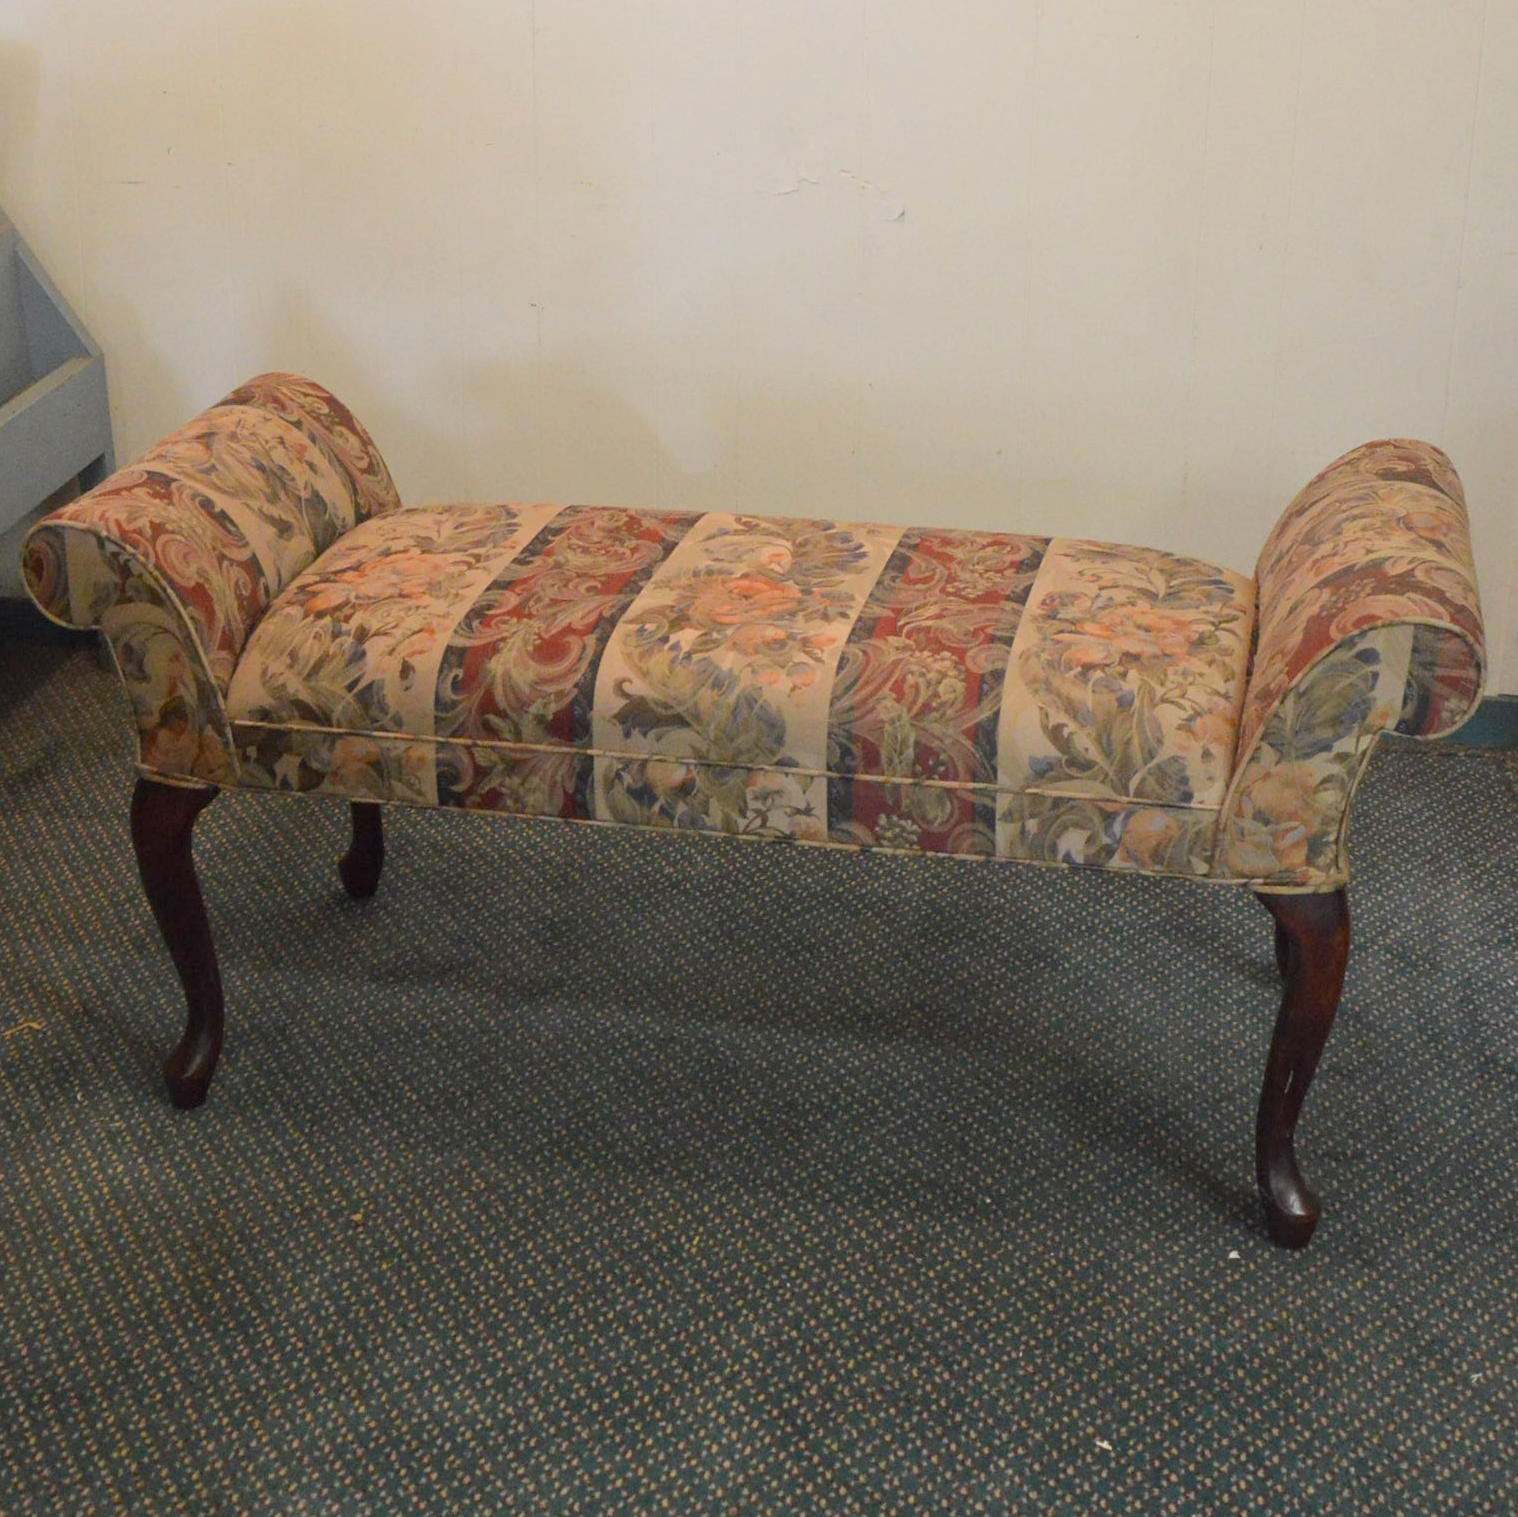 Upholstered Queen Anne Style Bench